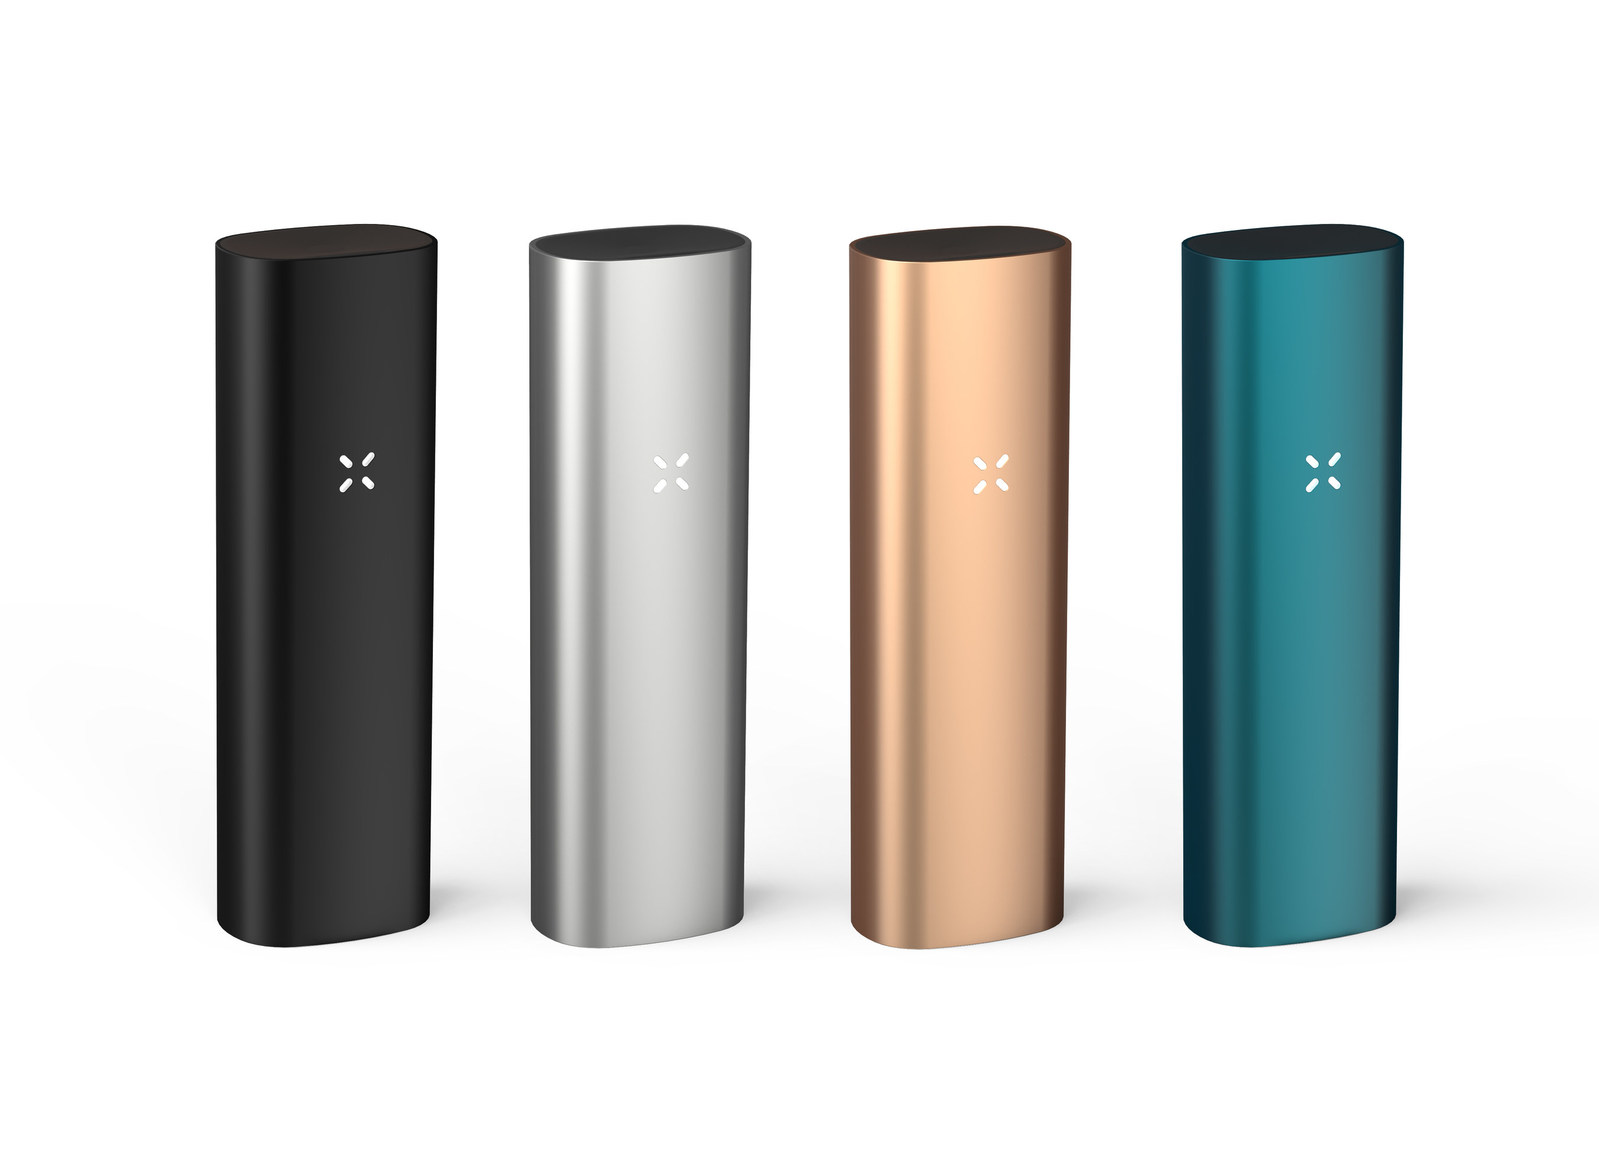 New Pax 3 Colors And Finishes